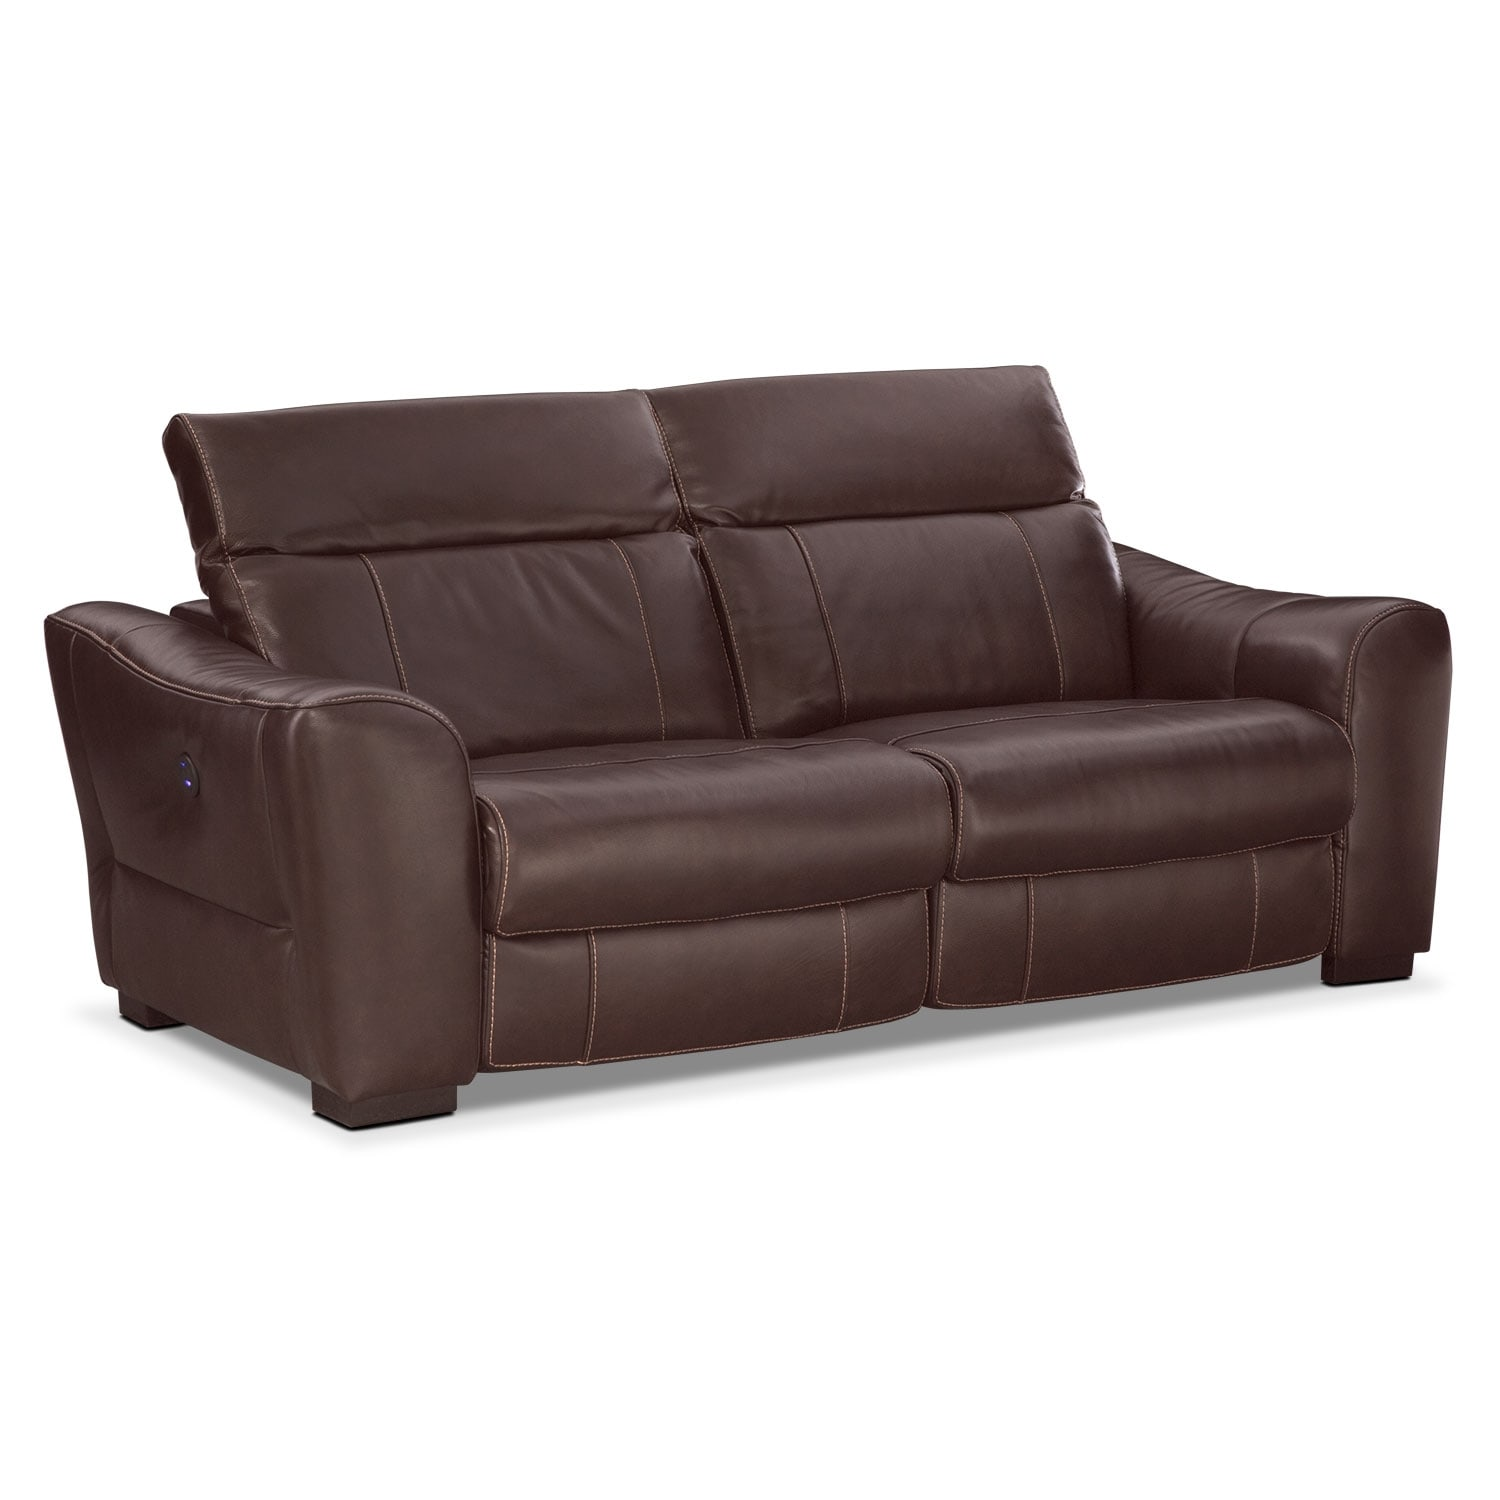 Living Room Furniture - Palisade 2-Piece Power Sofa - Brown